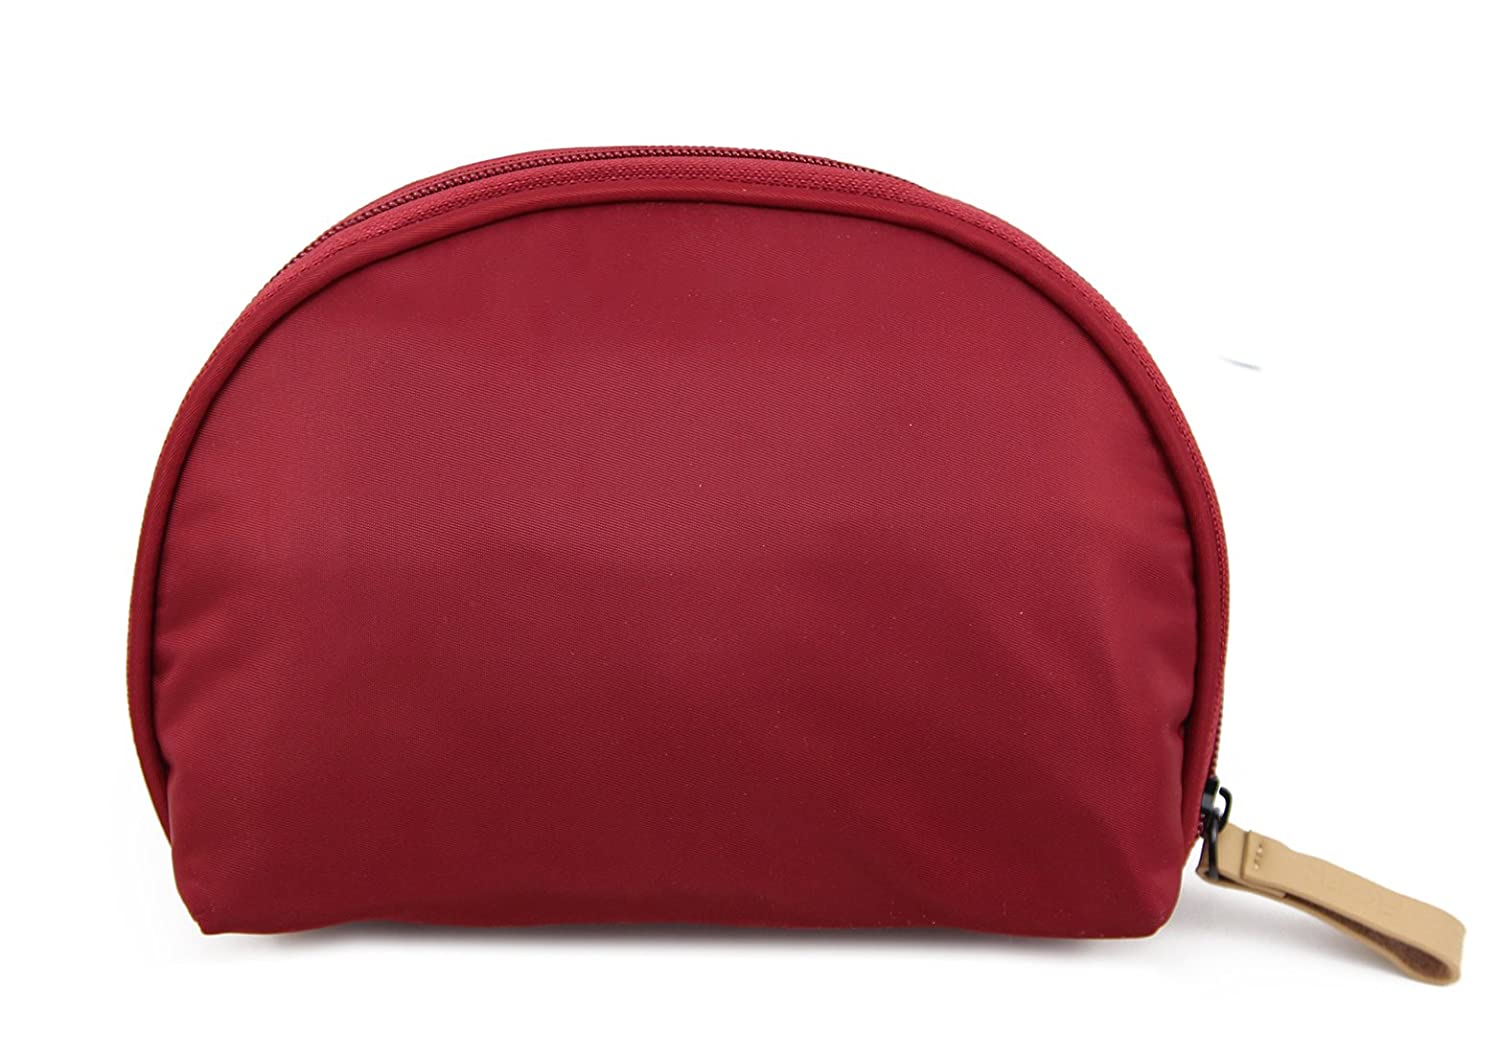 Admirable Idea Small Portable Cosmetic Travel Bag,Women Girls Handy Cosmetic Pouch,Travel Organizer Case Makeup Bag - Dark red